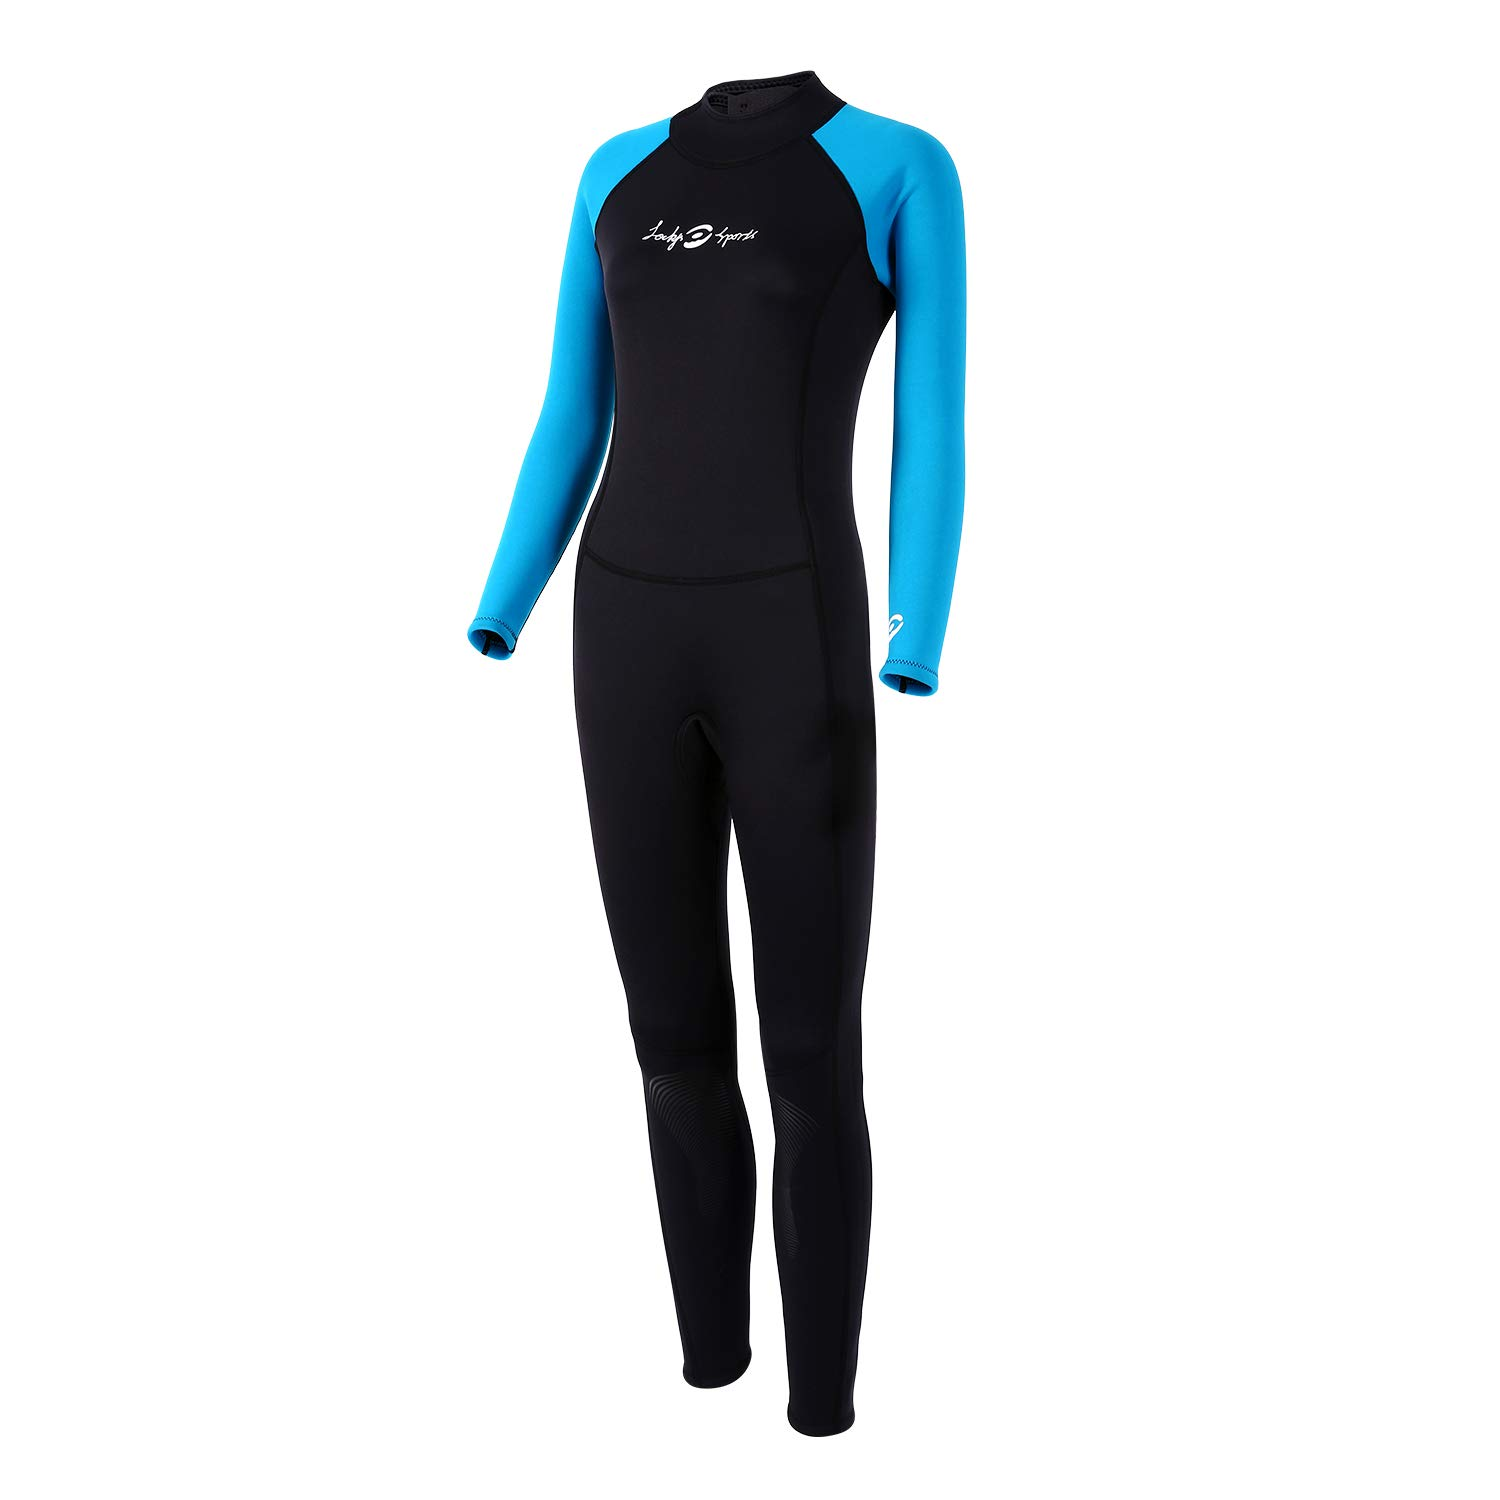 lockys sports Womens Full Wetsuits,Full Body Diving Suit Premium Neoprene Long Sleeve Long Leg BackZip with Adjustable Collar for Diving Surfing Snorkeling for Women (Medium) by lockys sports